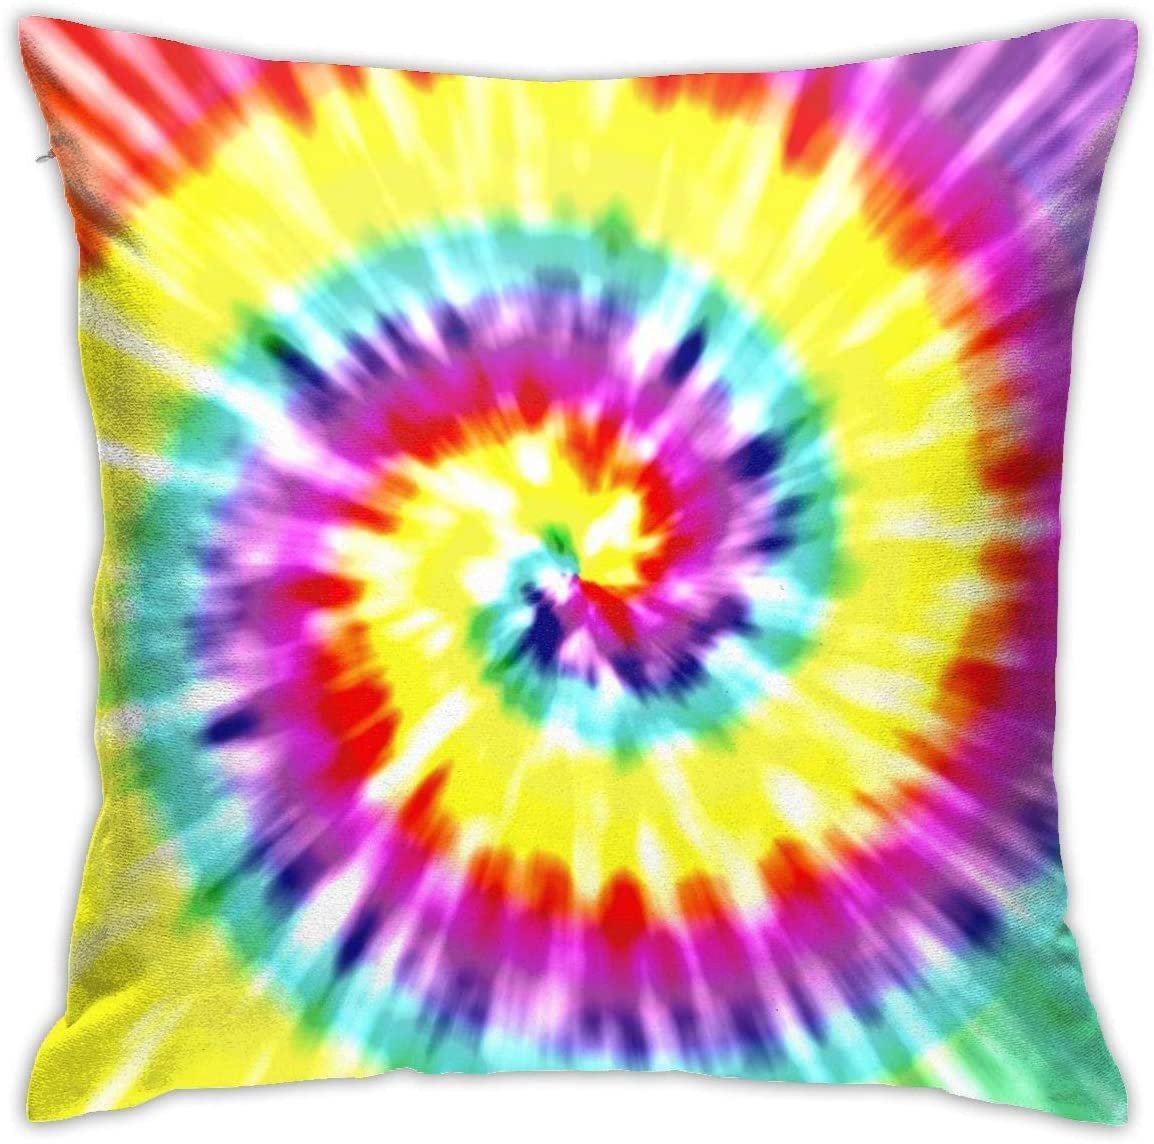 ULQUIEOR Unique Tye Dye Art Throw Pillow Covers Decorative Square Cushion Pillowcase for Sofa Home Bedroom Bed 18 x 18 Inch